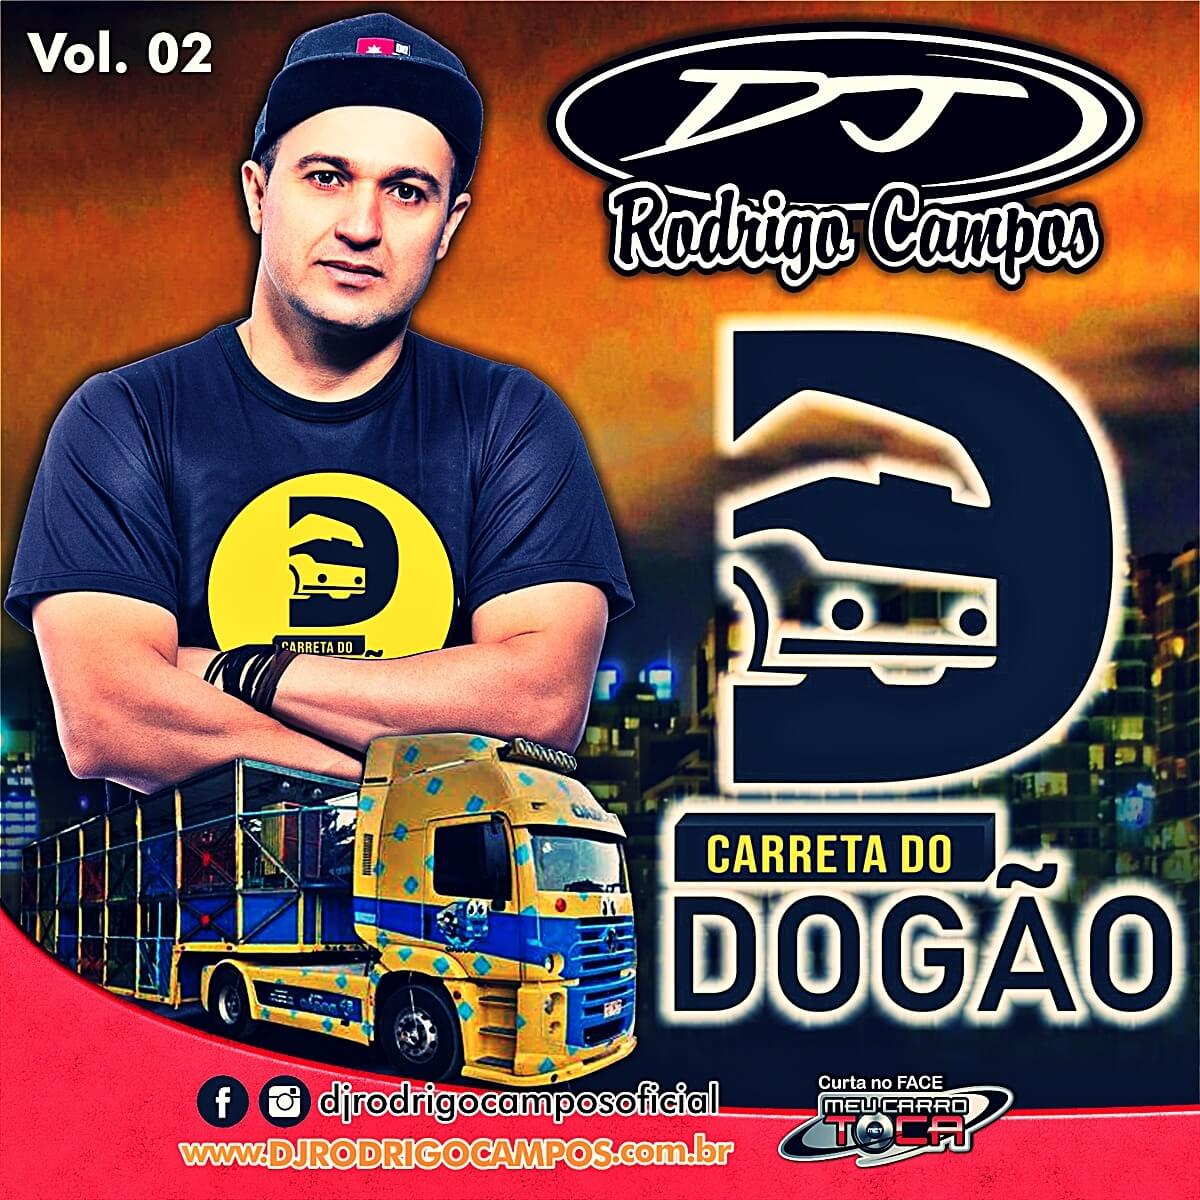 Carreta do Dogao Vol 02